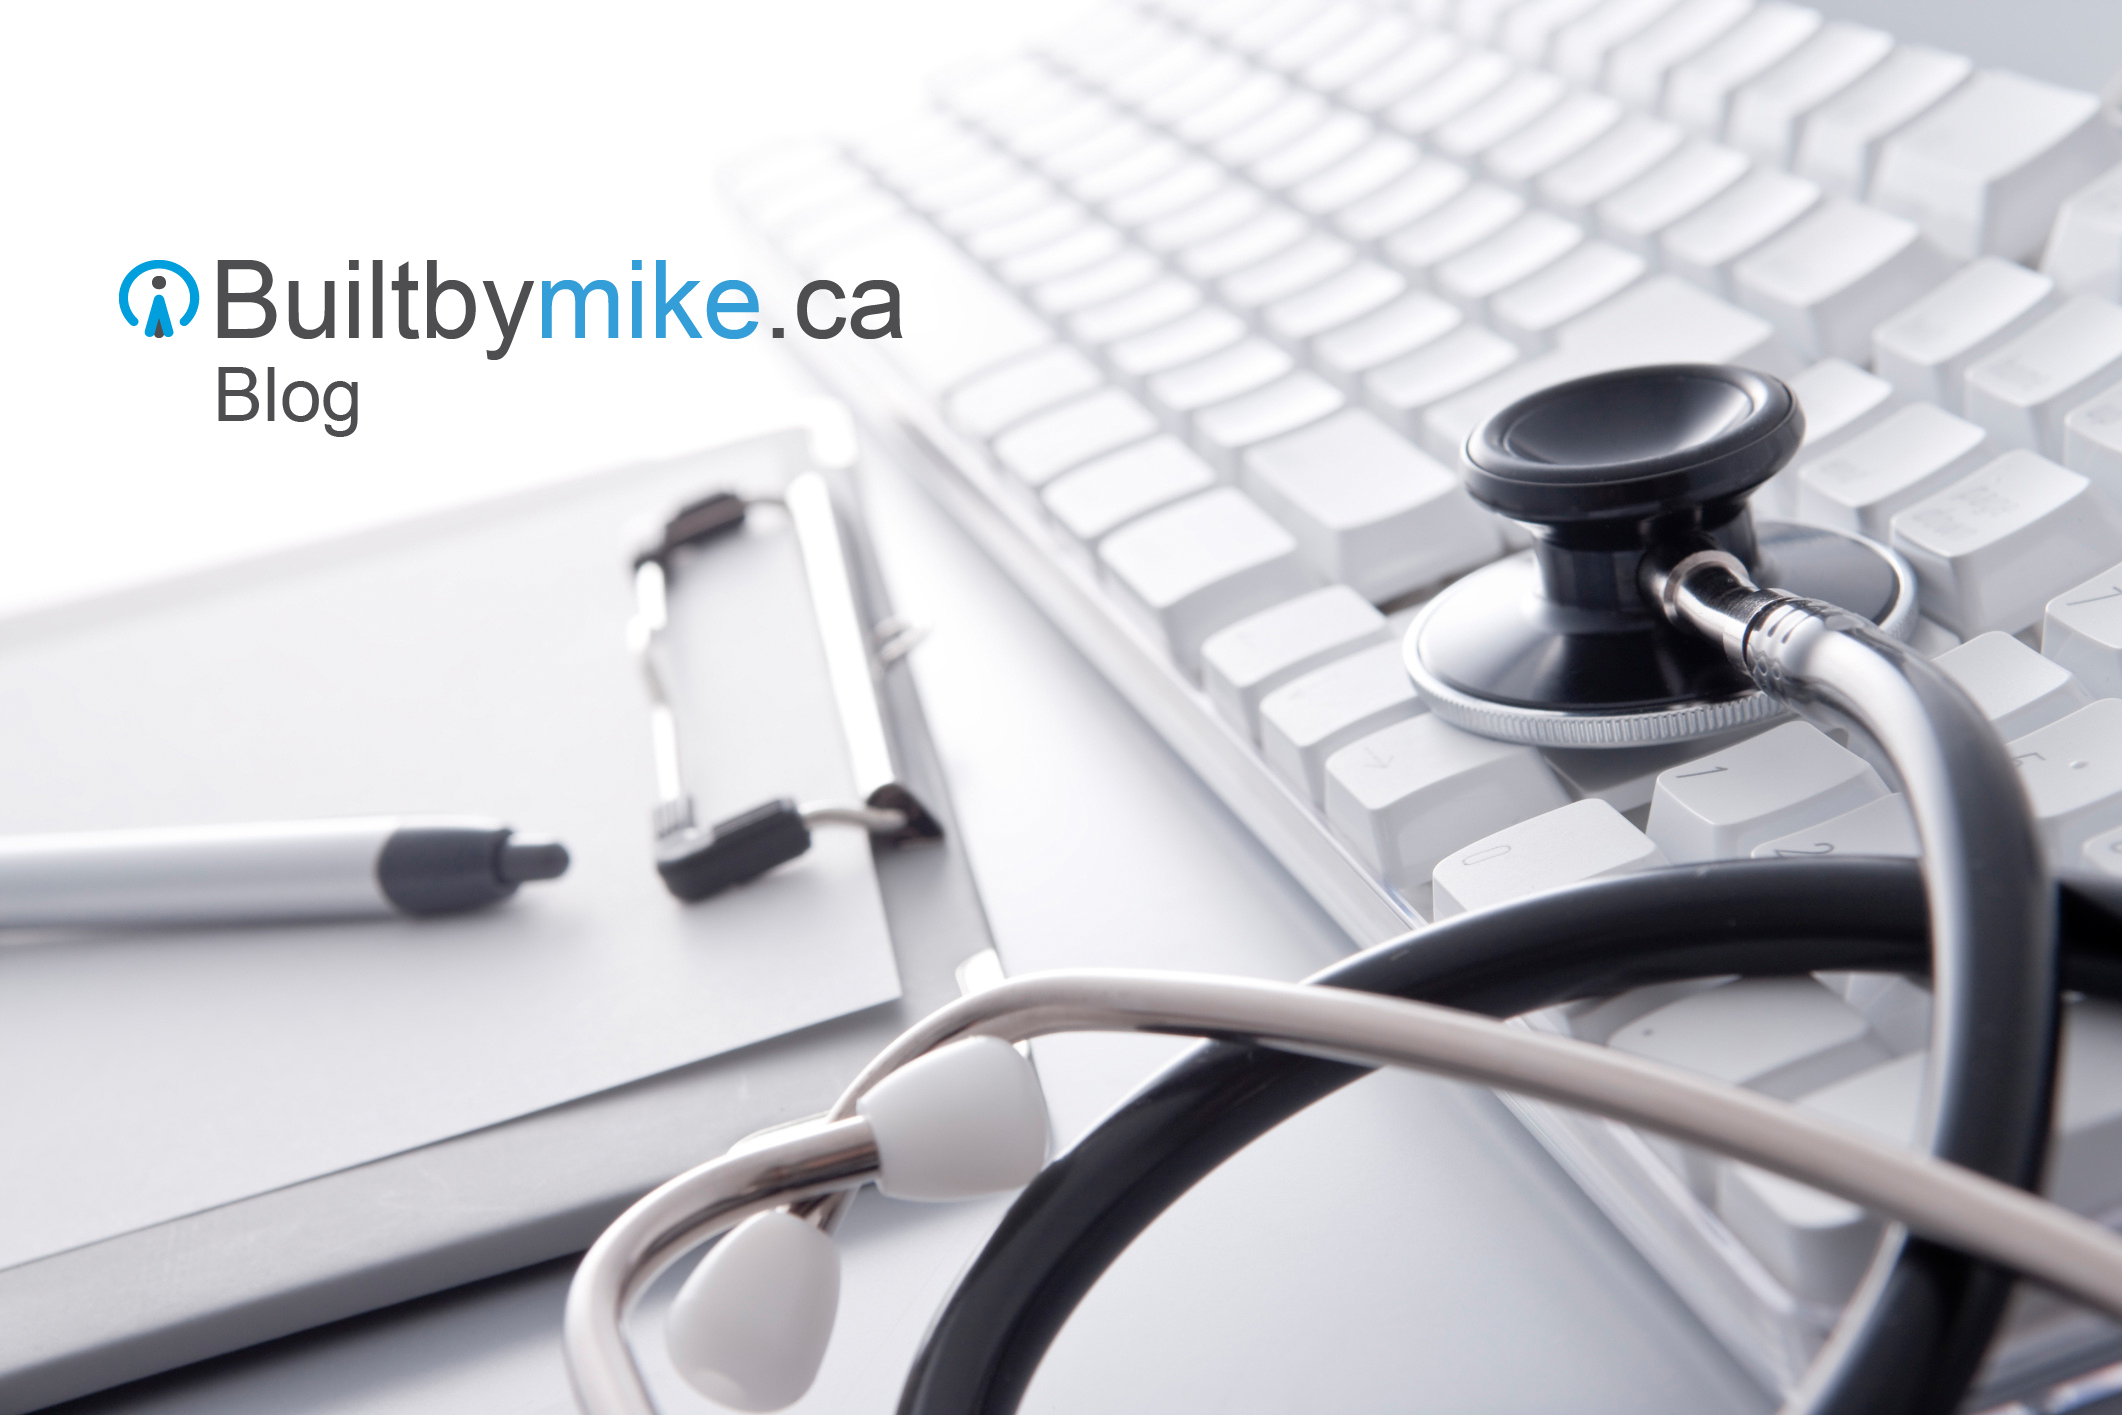 Builtbymike.ca IT Blog